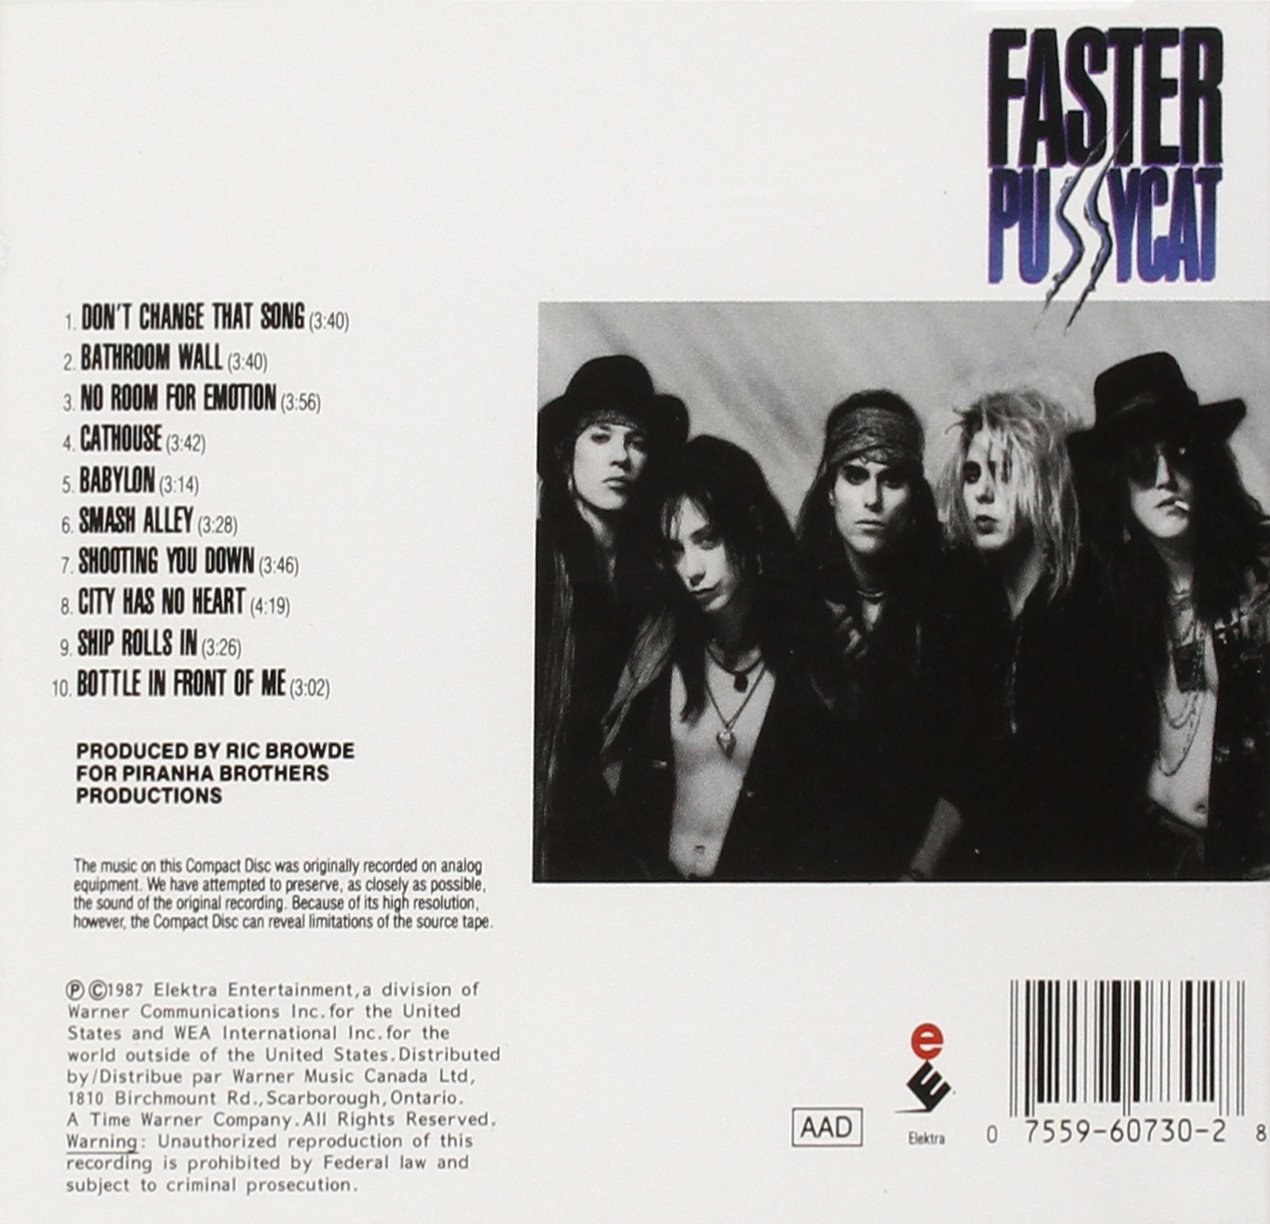 Faster Pussycat Bathroom Wall Lyrics -